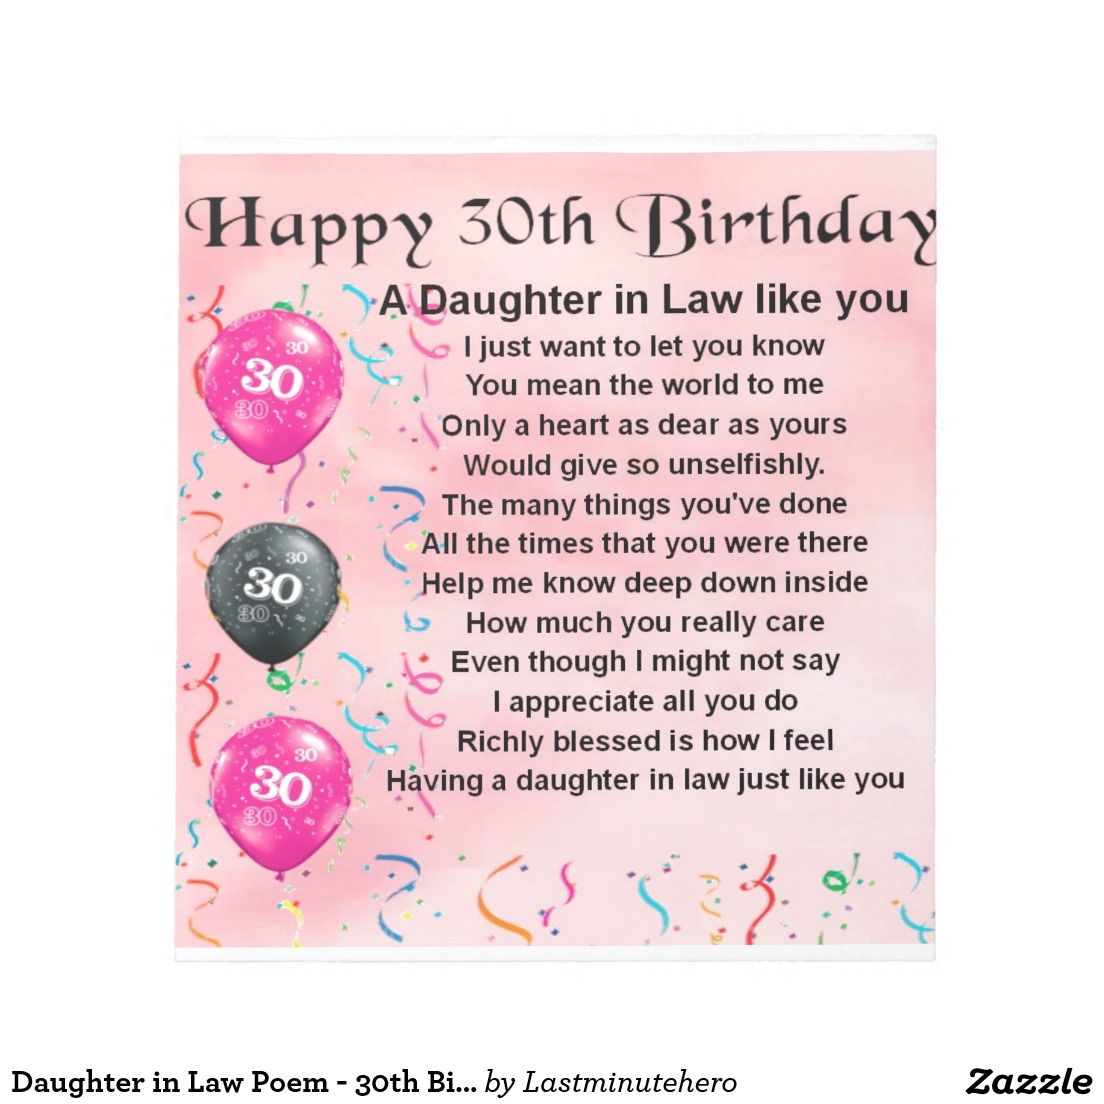 Daughter in Law Poem 30th Birthday Notepad Zazzle.co